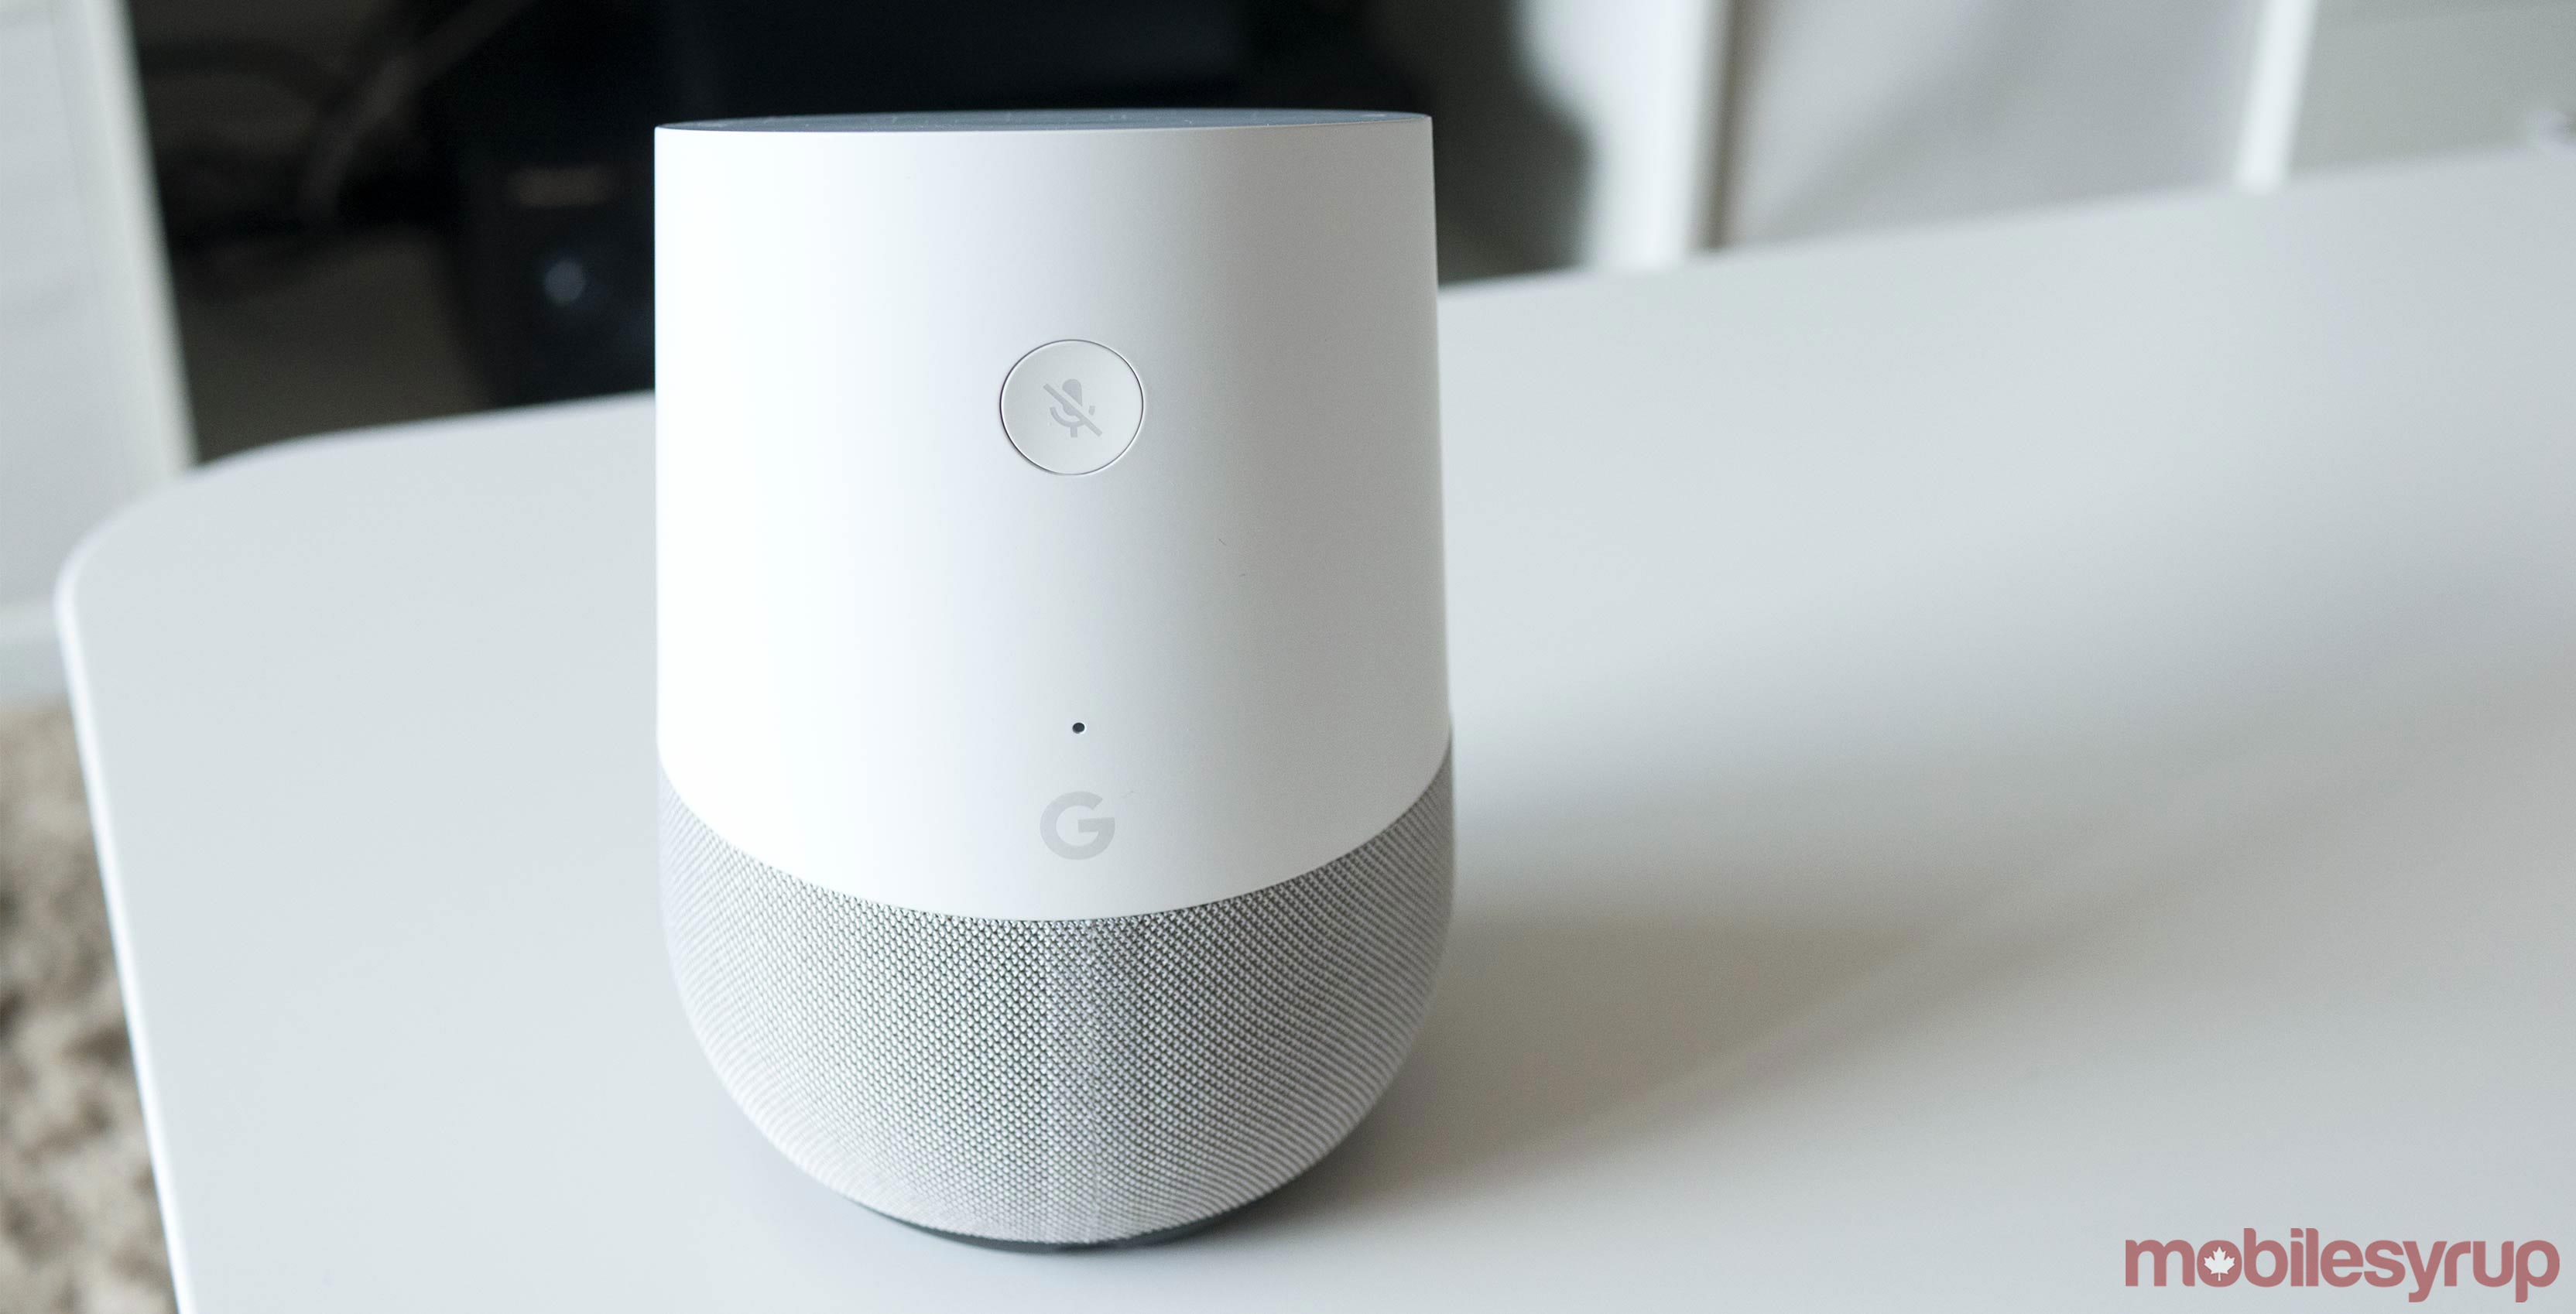 Google Reportedly Working on High-End Smart Speaker Variant Called 'Home Max'